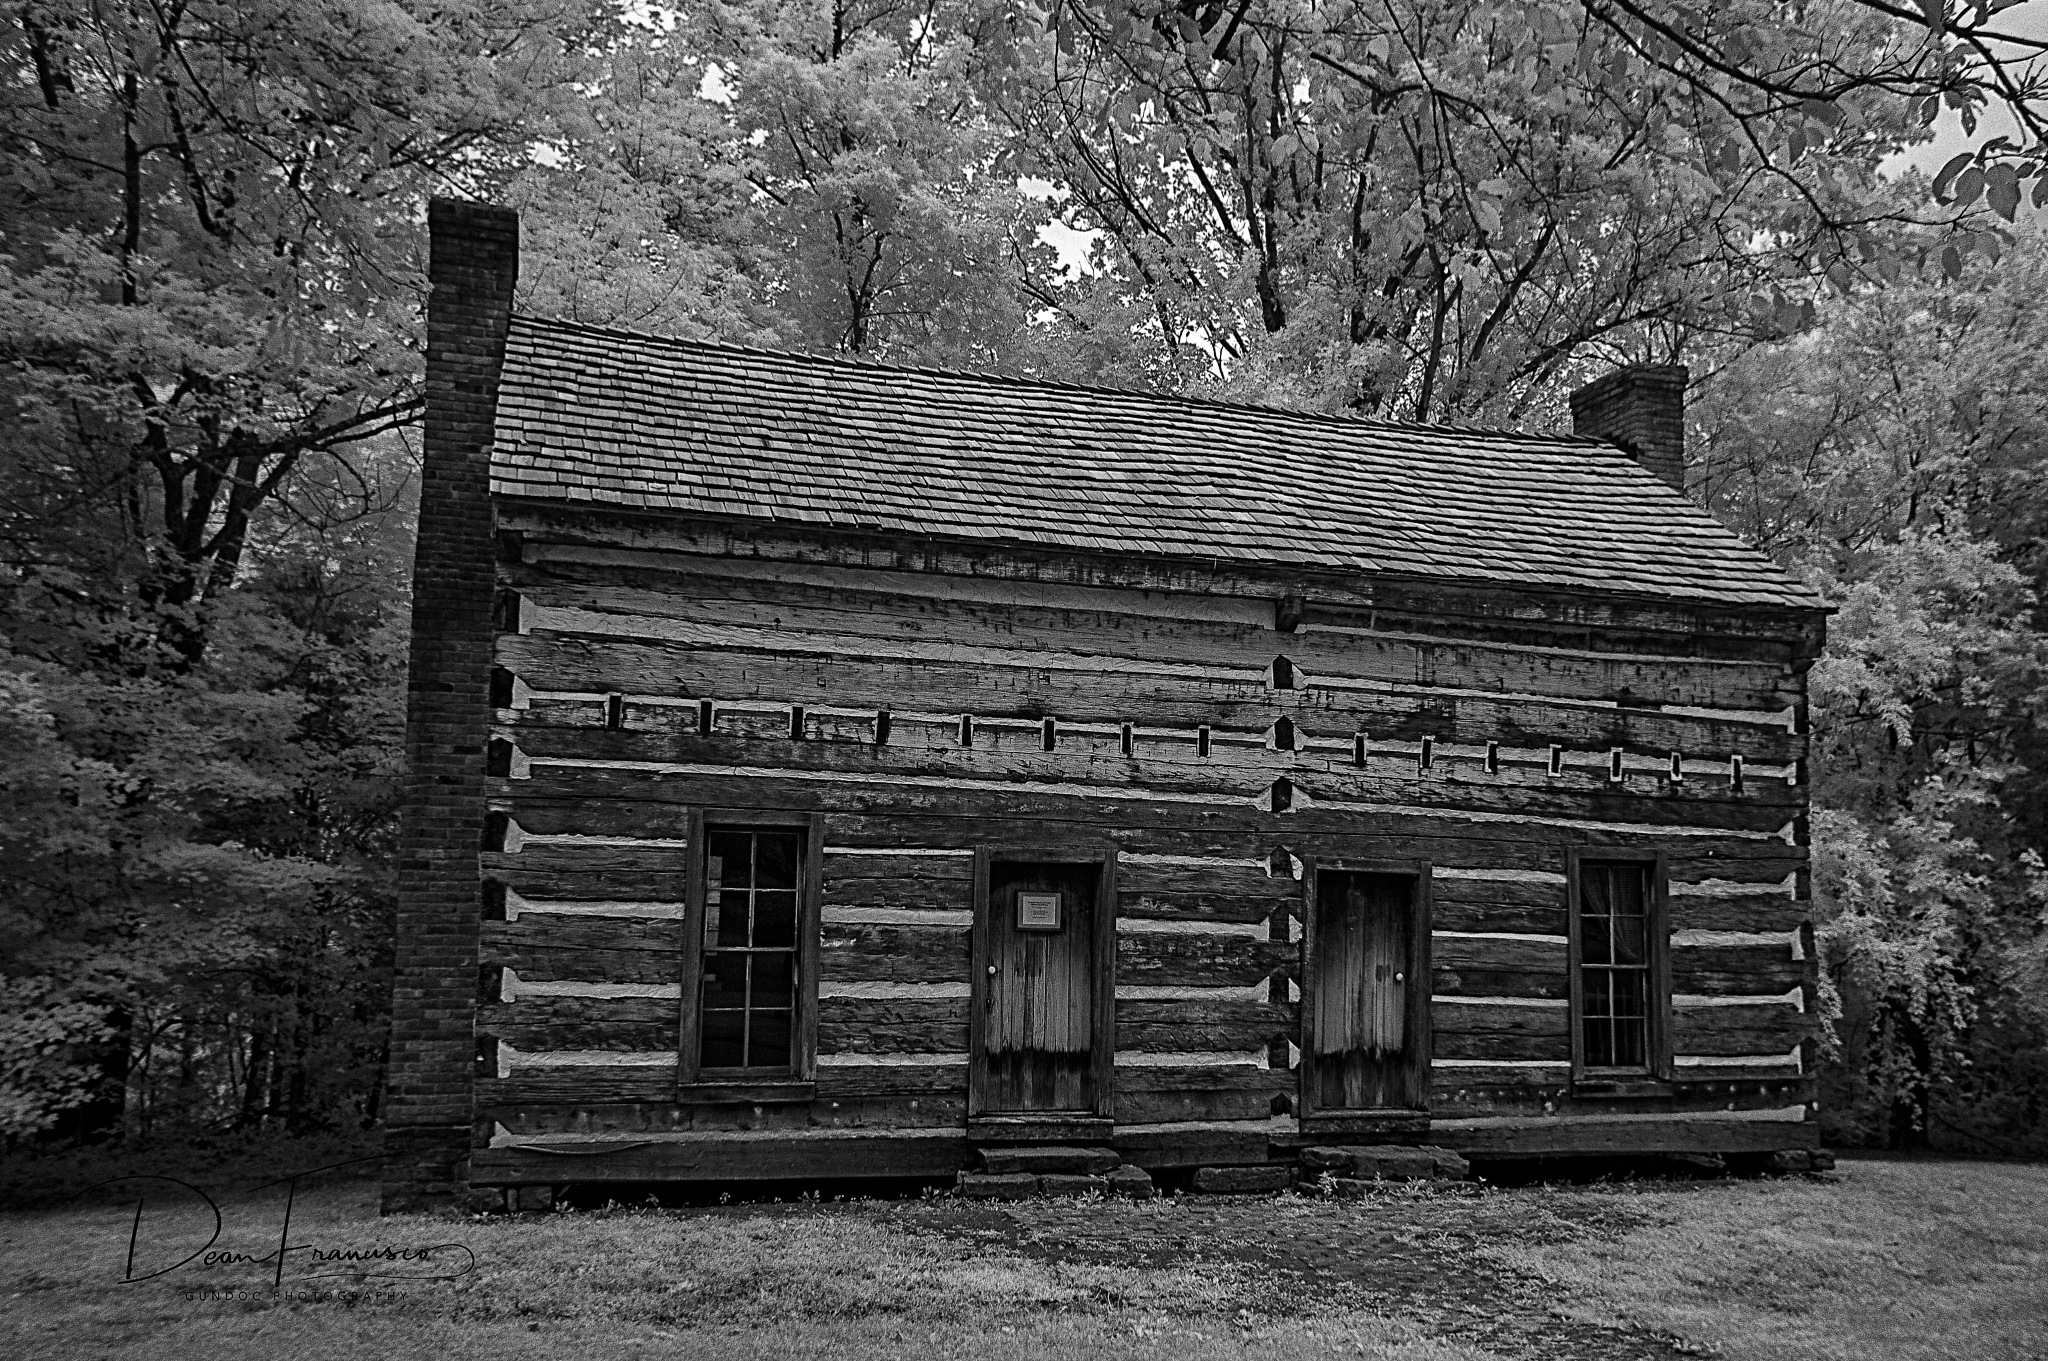 Log Cabin at Green River Overlook by Dean Francisco